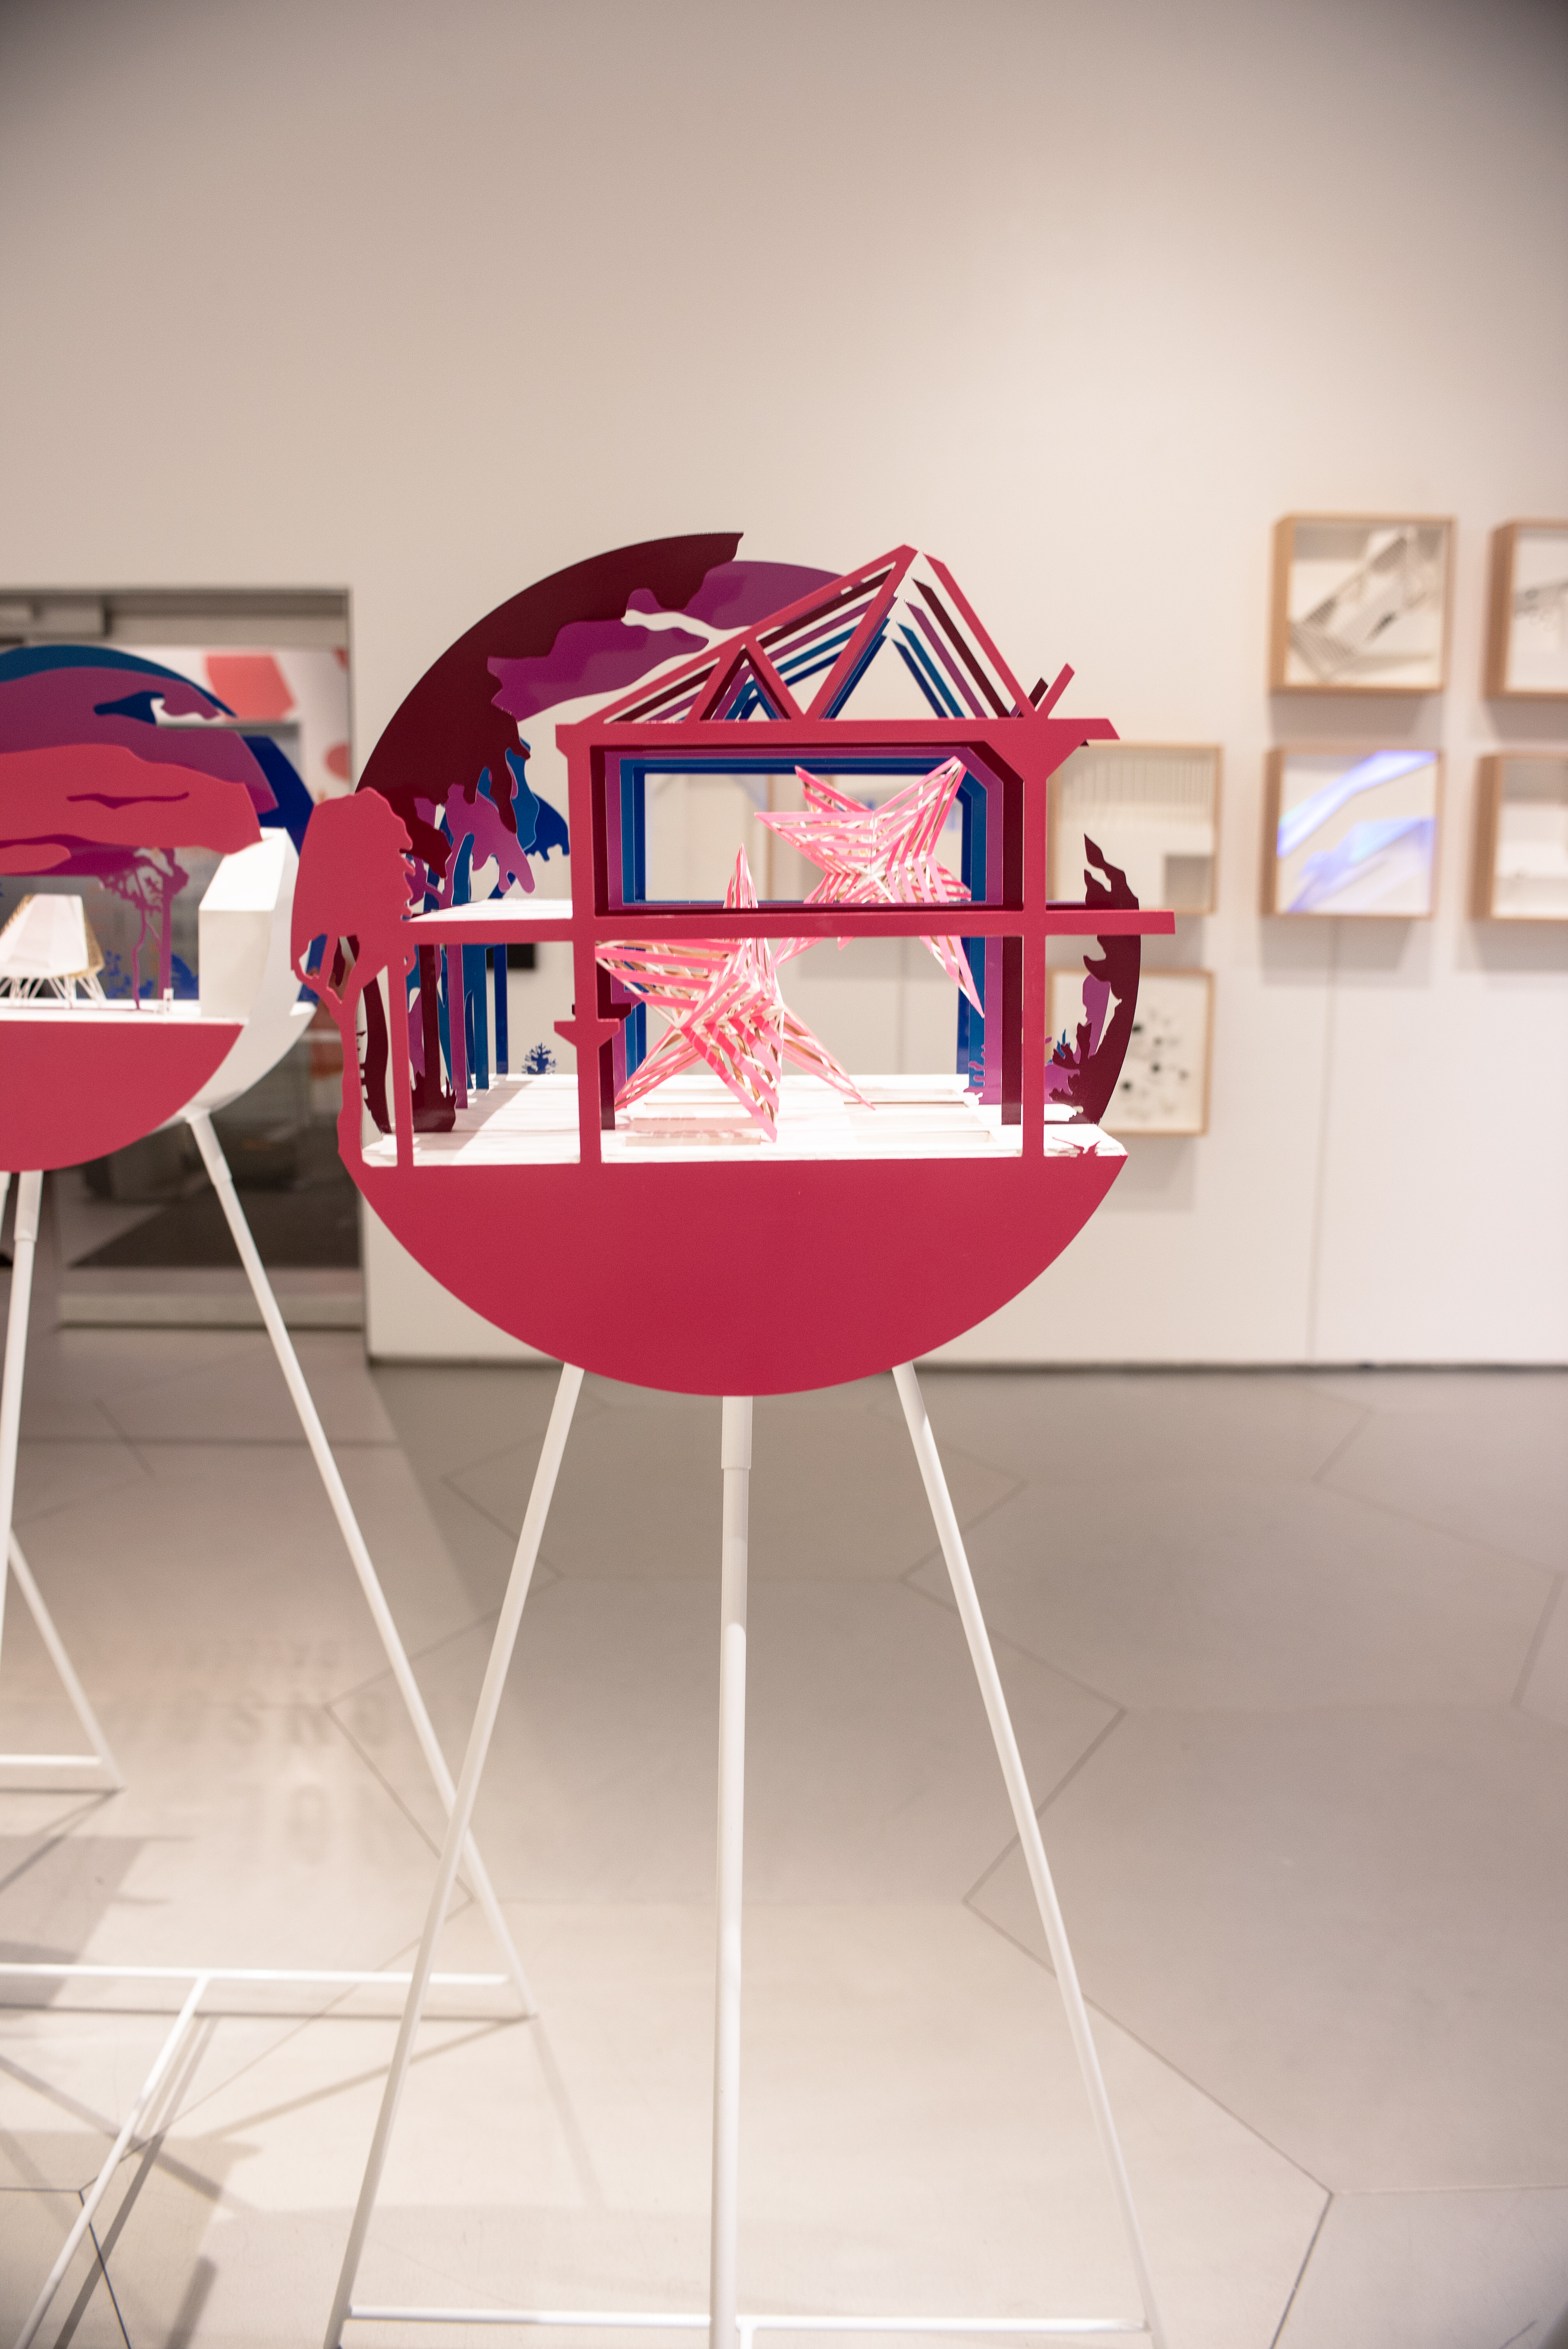 Architectural League Prize winner Anya Sirota's exhibit at Parsons School of Design.